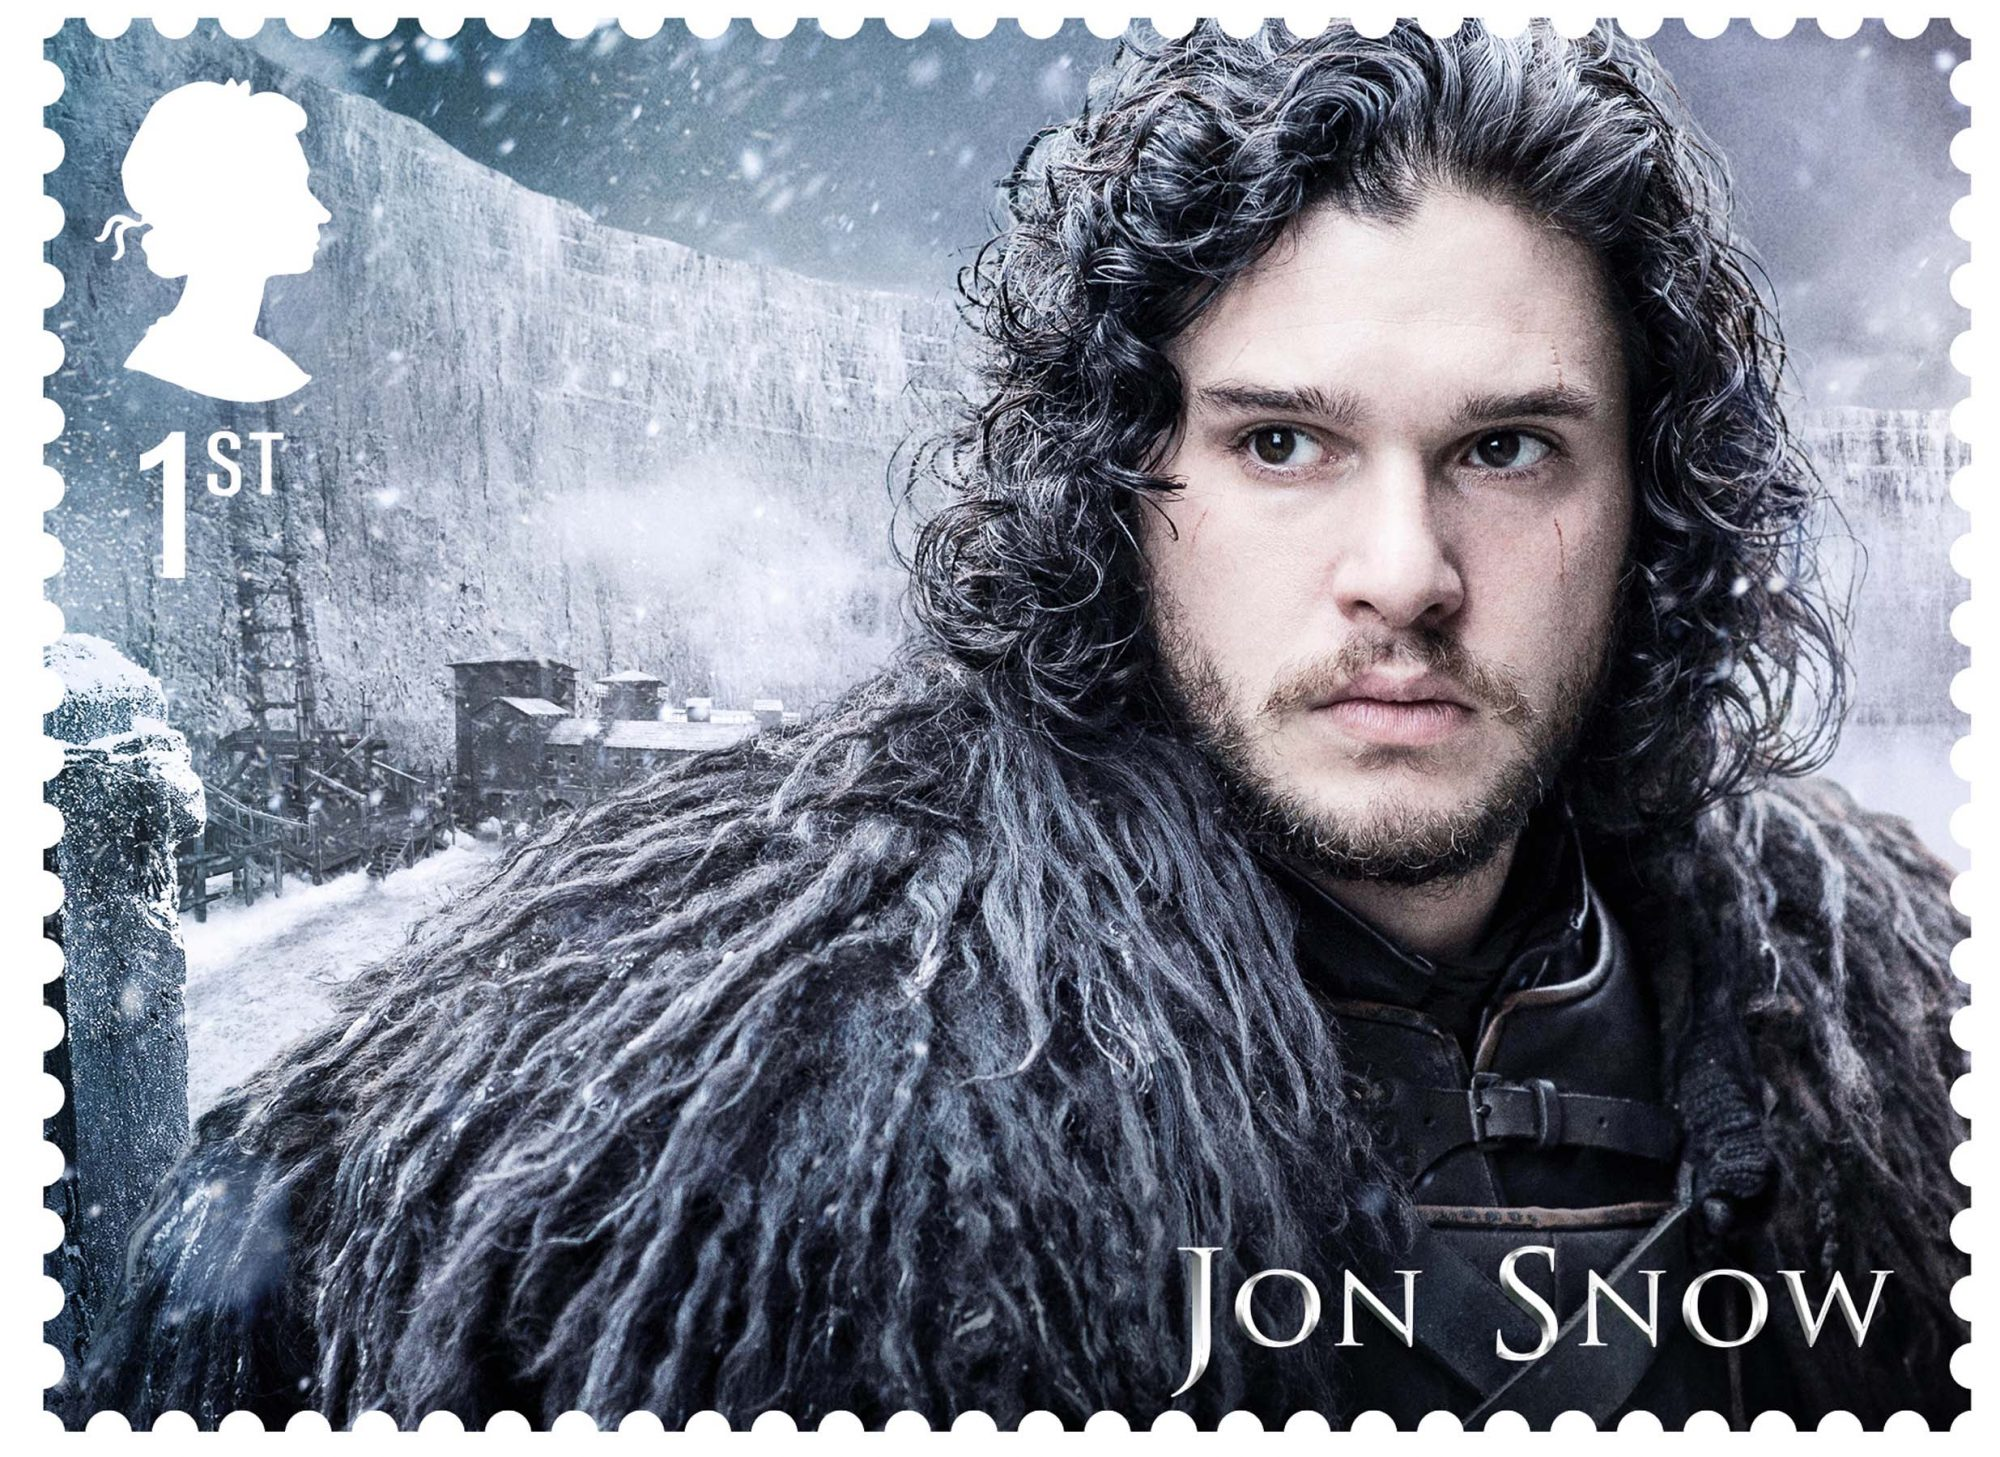 GoT Jon Snow stamp